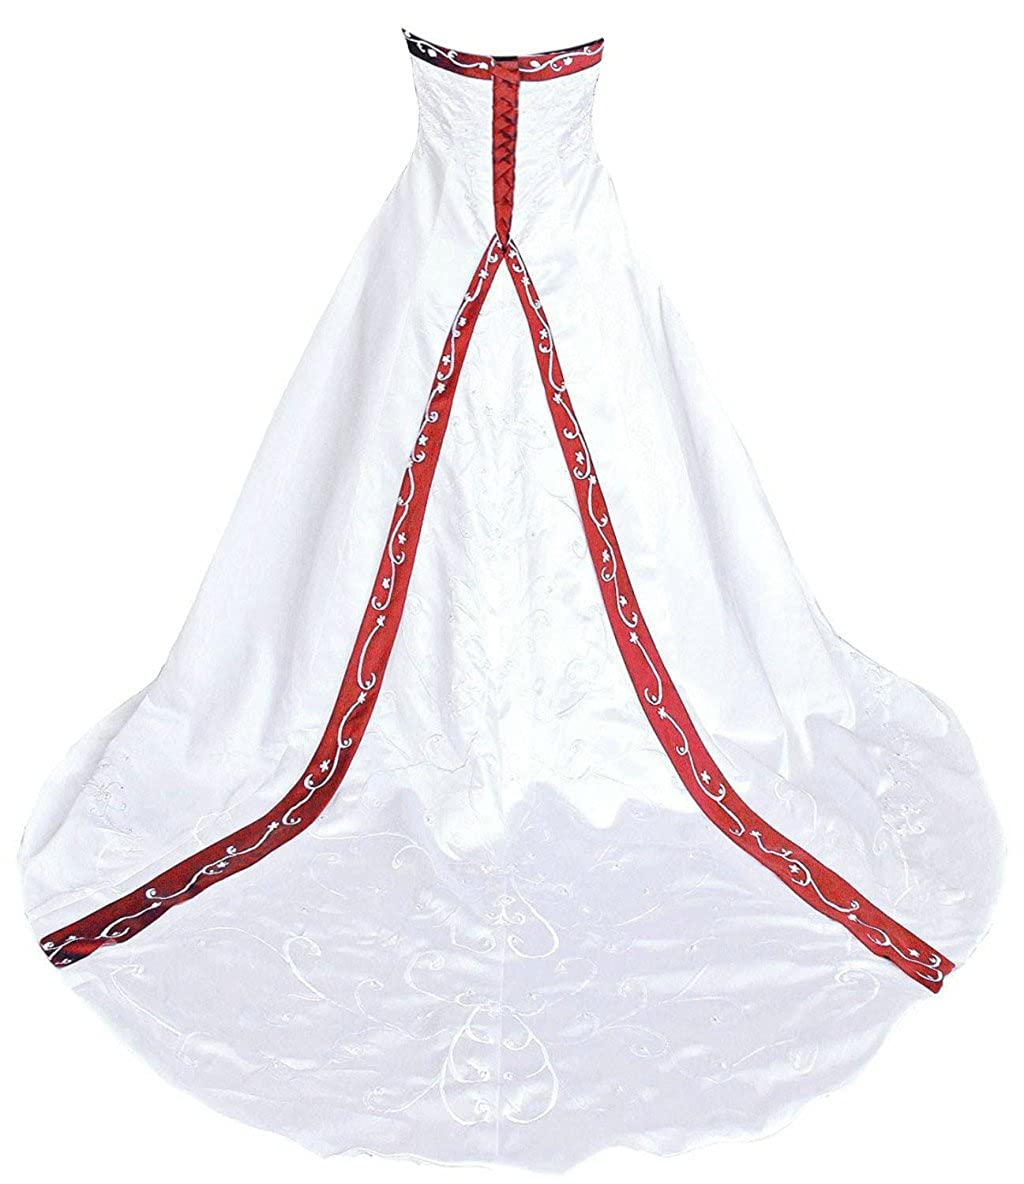 White & Red Vantexi Women's Elegant Strapless Embroidery Wedding Dress Bridal Gown